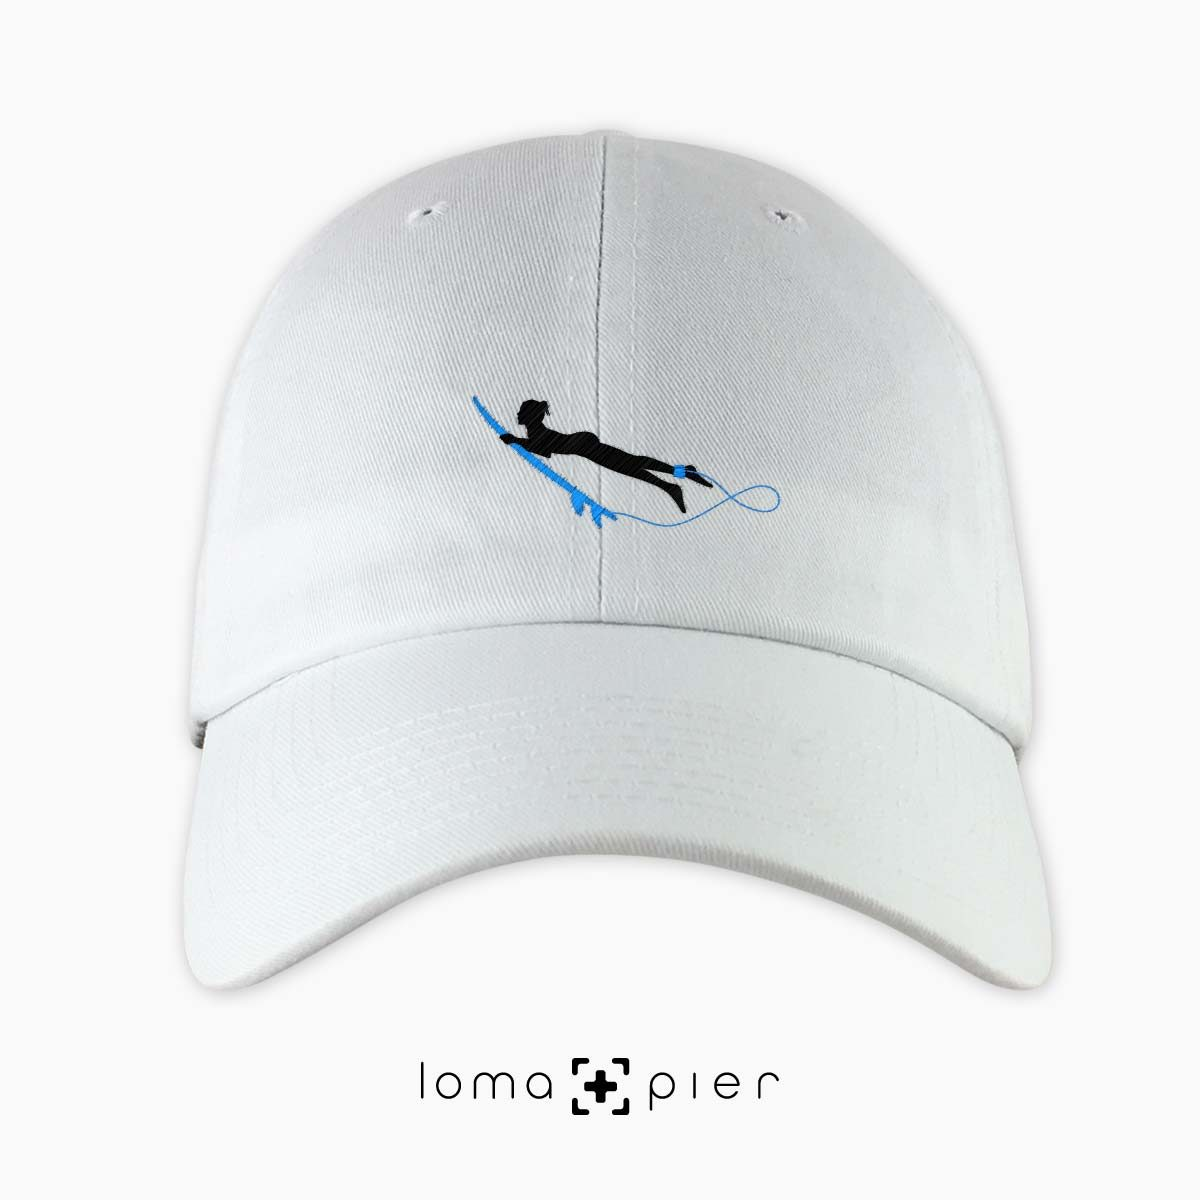 DUCK NAKED SURFER icon embroidered on a white dad hat by loma+pier hat store made in the USA